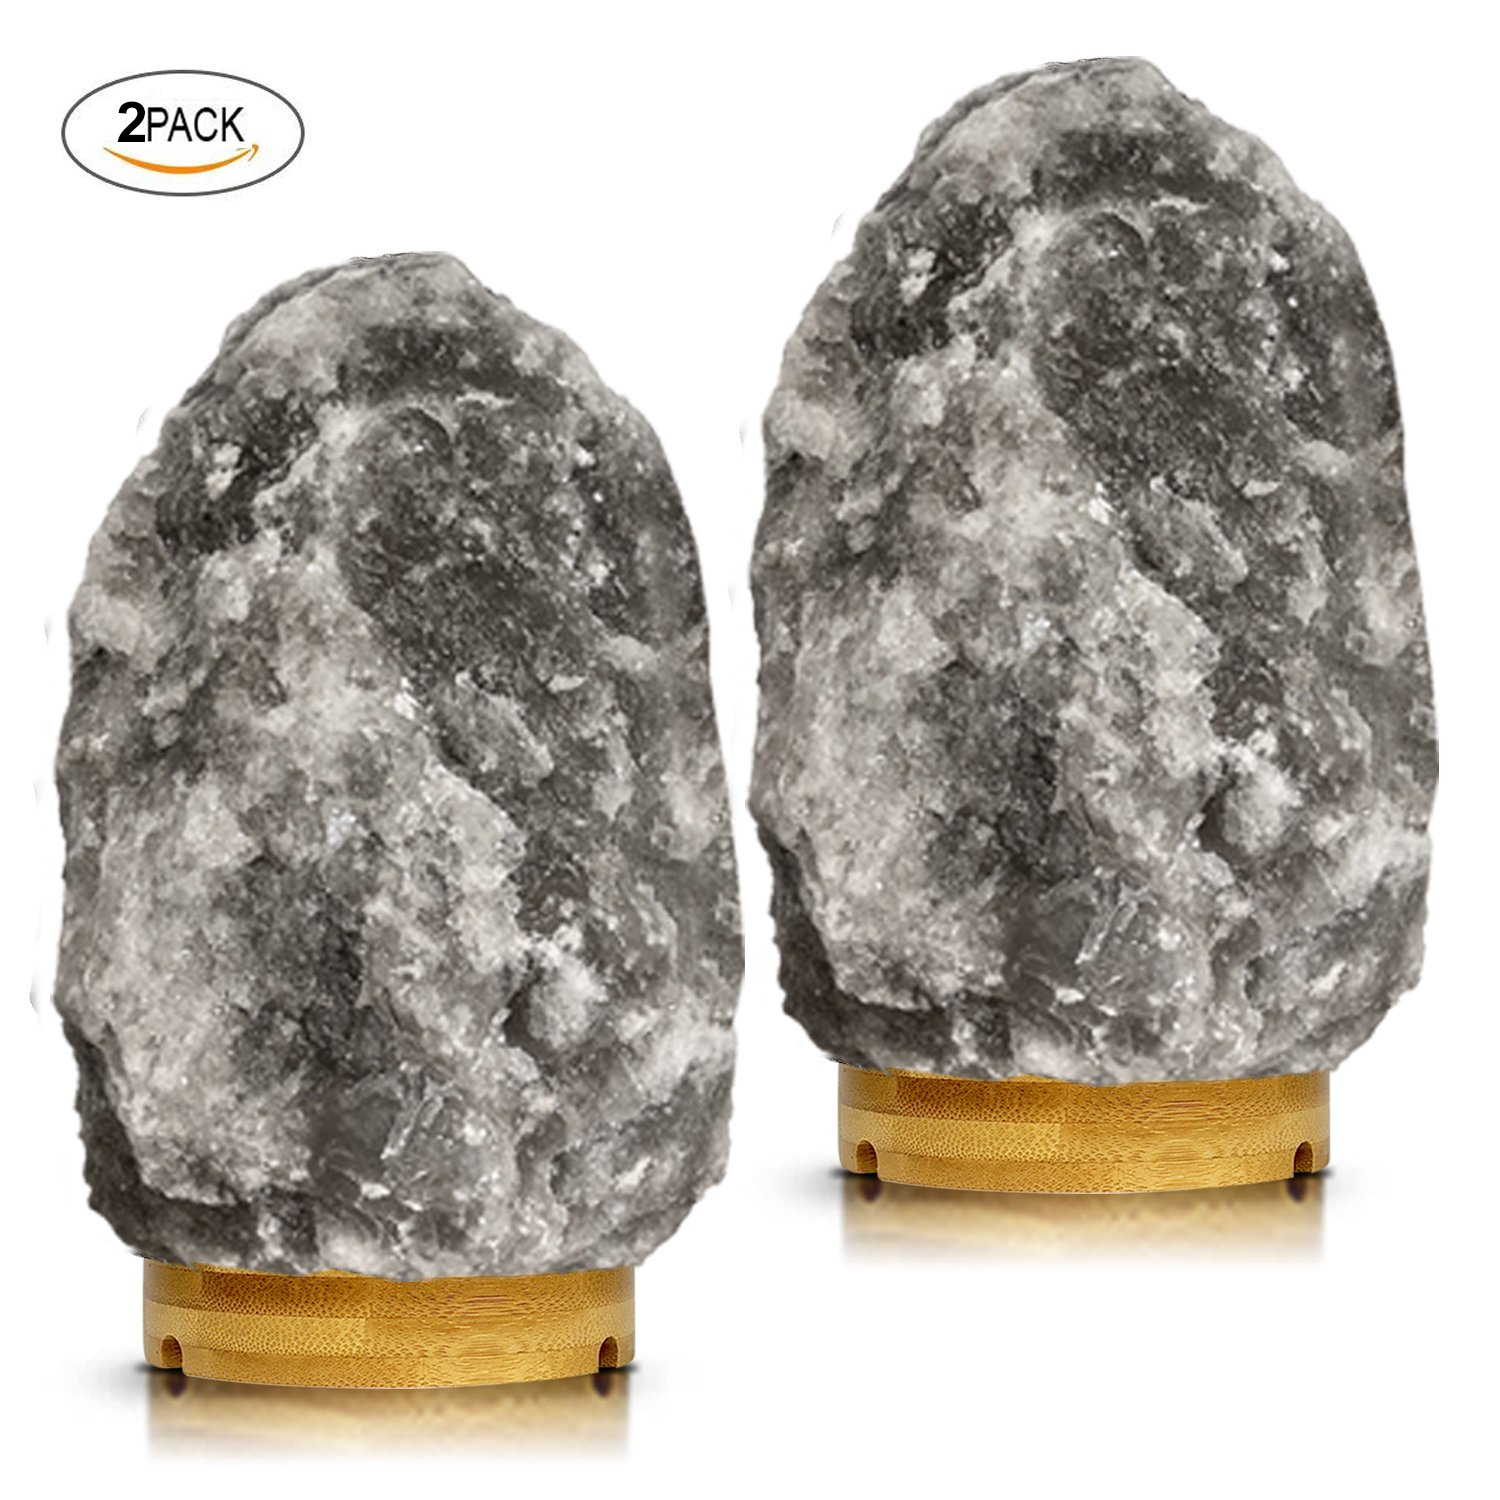 Set of 2 Pack Large Heavy Duty (8-11 lbs,7.5-10'') Grey Gray White Himalayan Salt Lamp Night Light Lights Gray Crystal Hymalain Rock Table Lamps, Rubberwood Base,Dimmable Switch Control 4 Bulbs Include